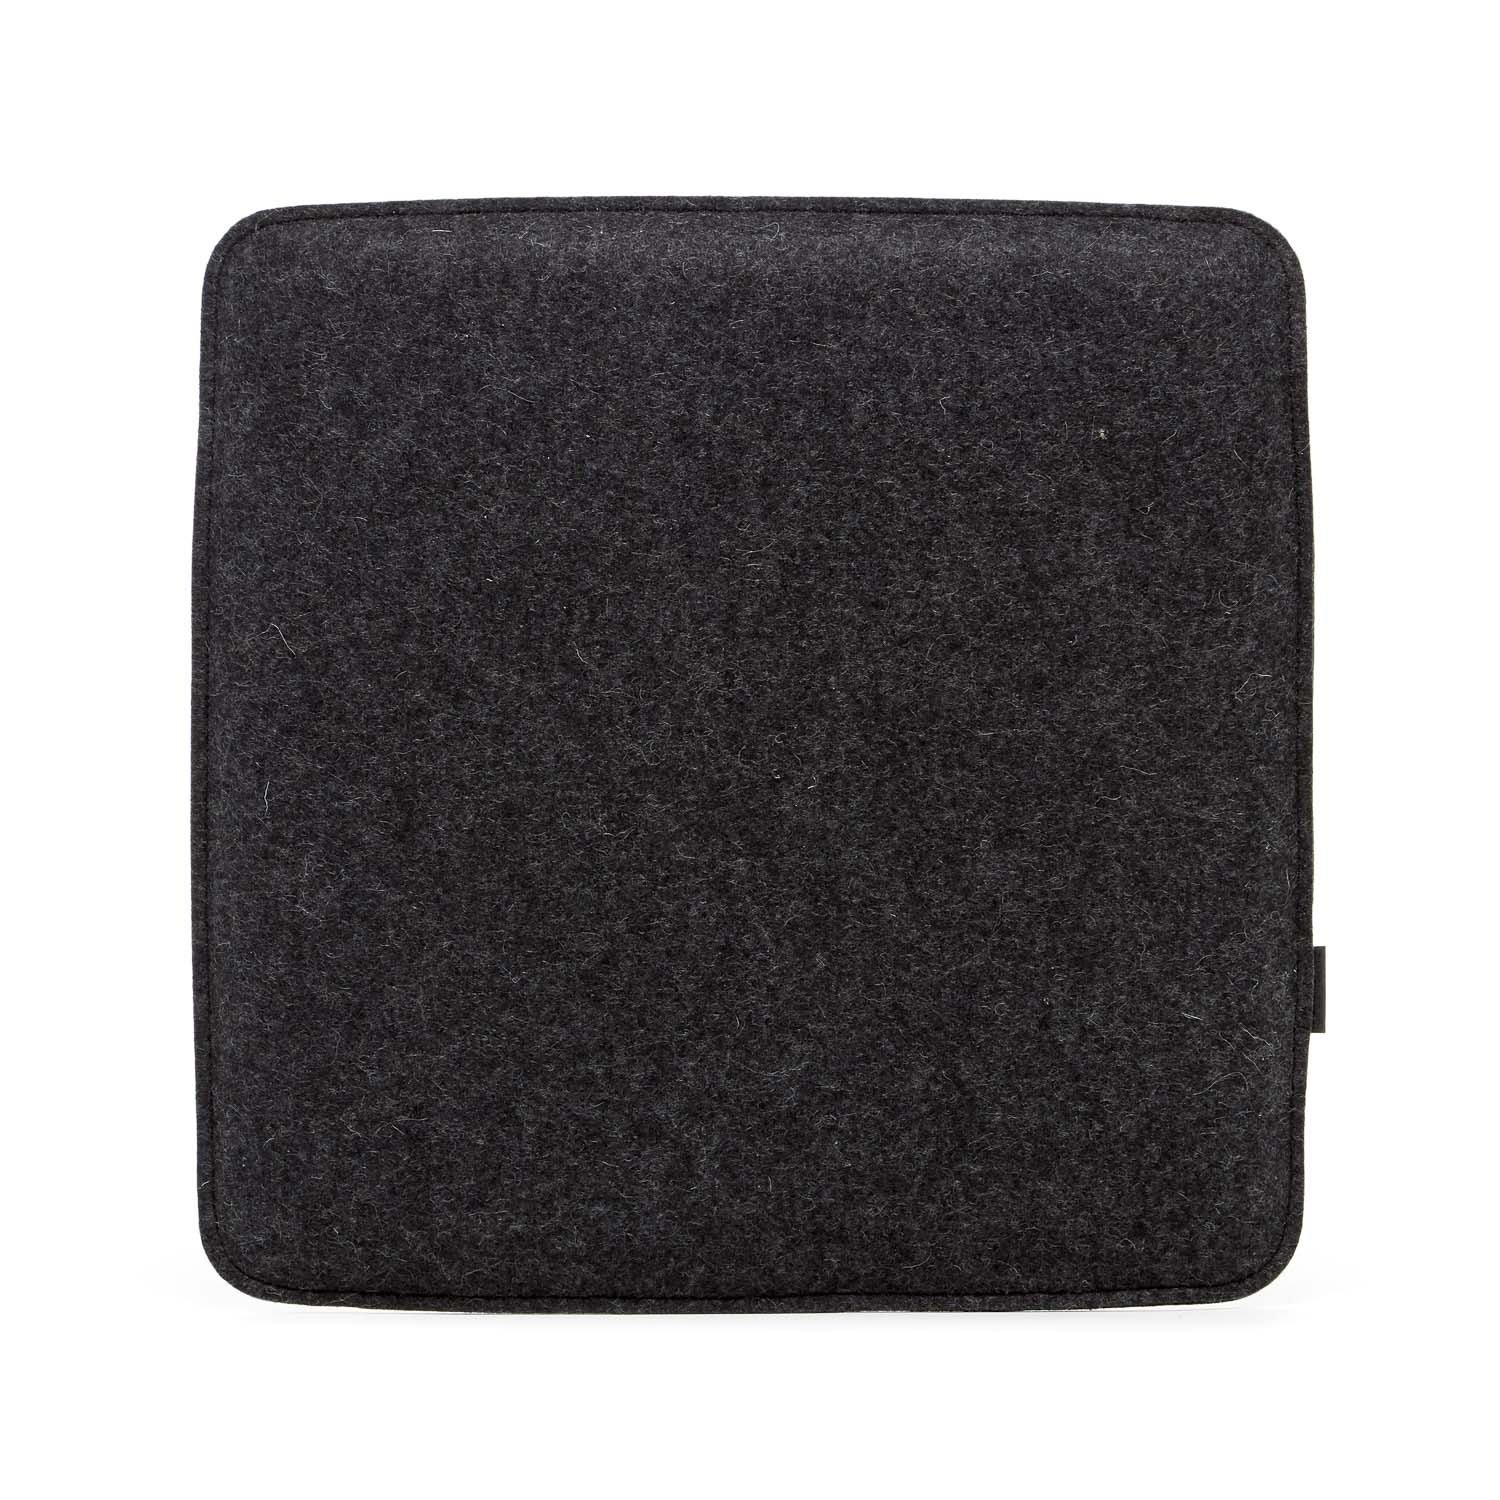 Seat Pad - Square - Charcoal-1